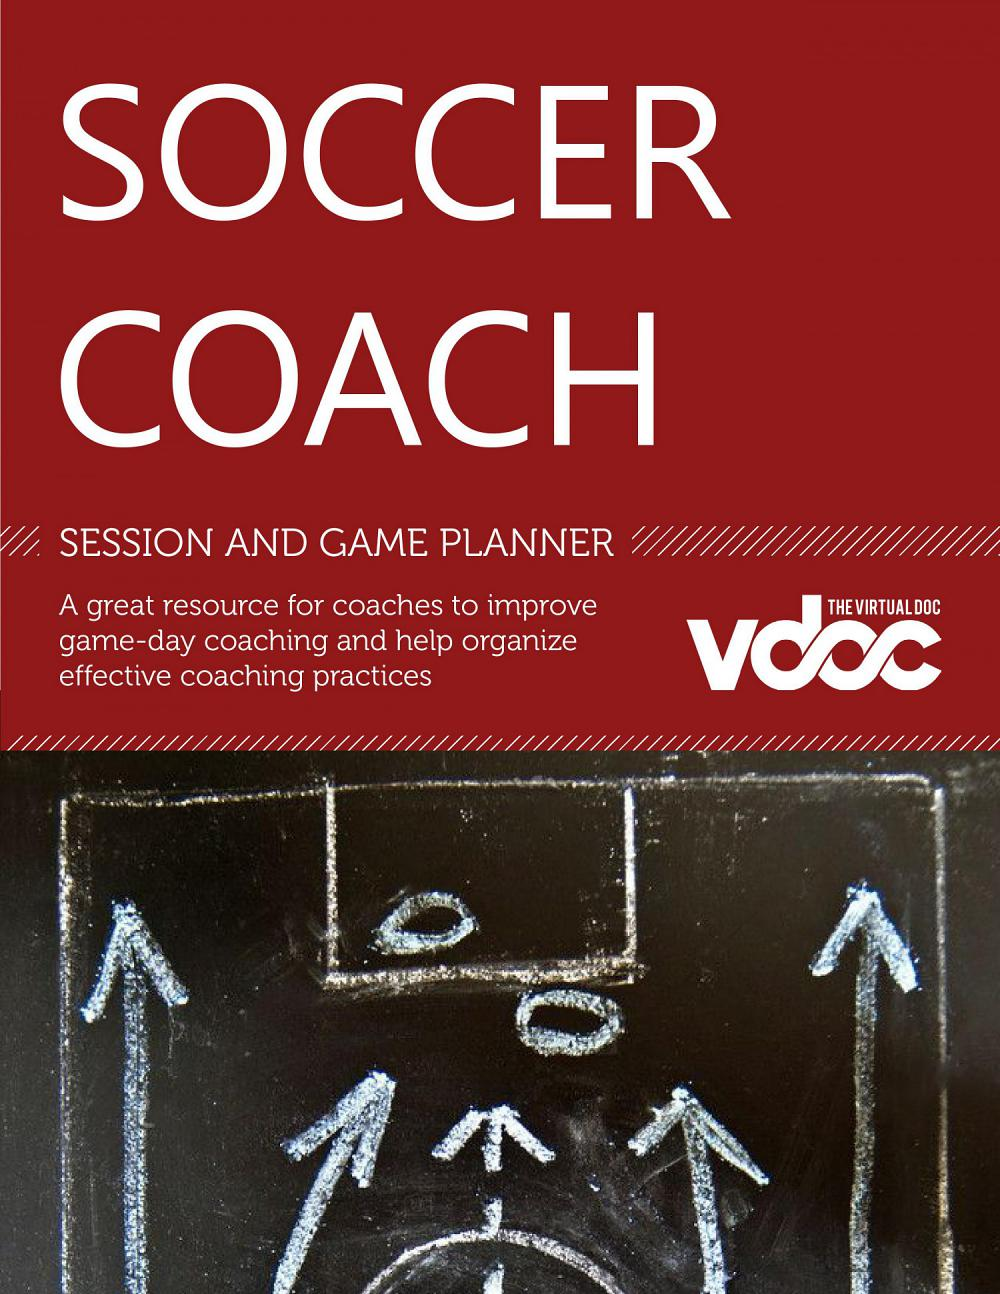 Soccer Coach - Session and Game Planner